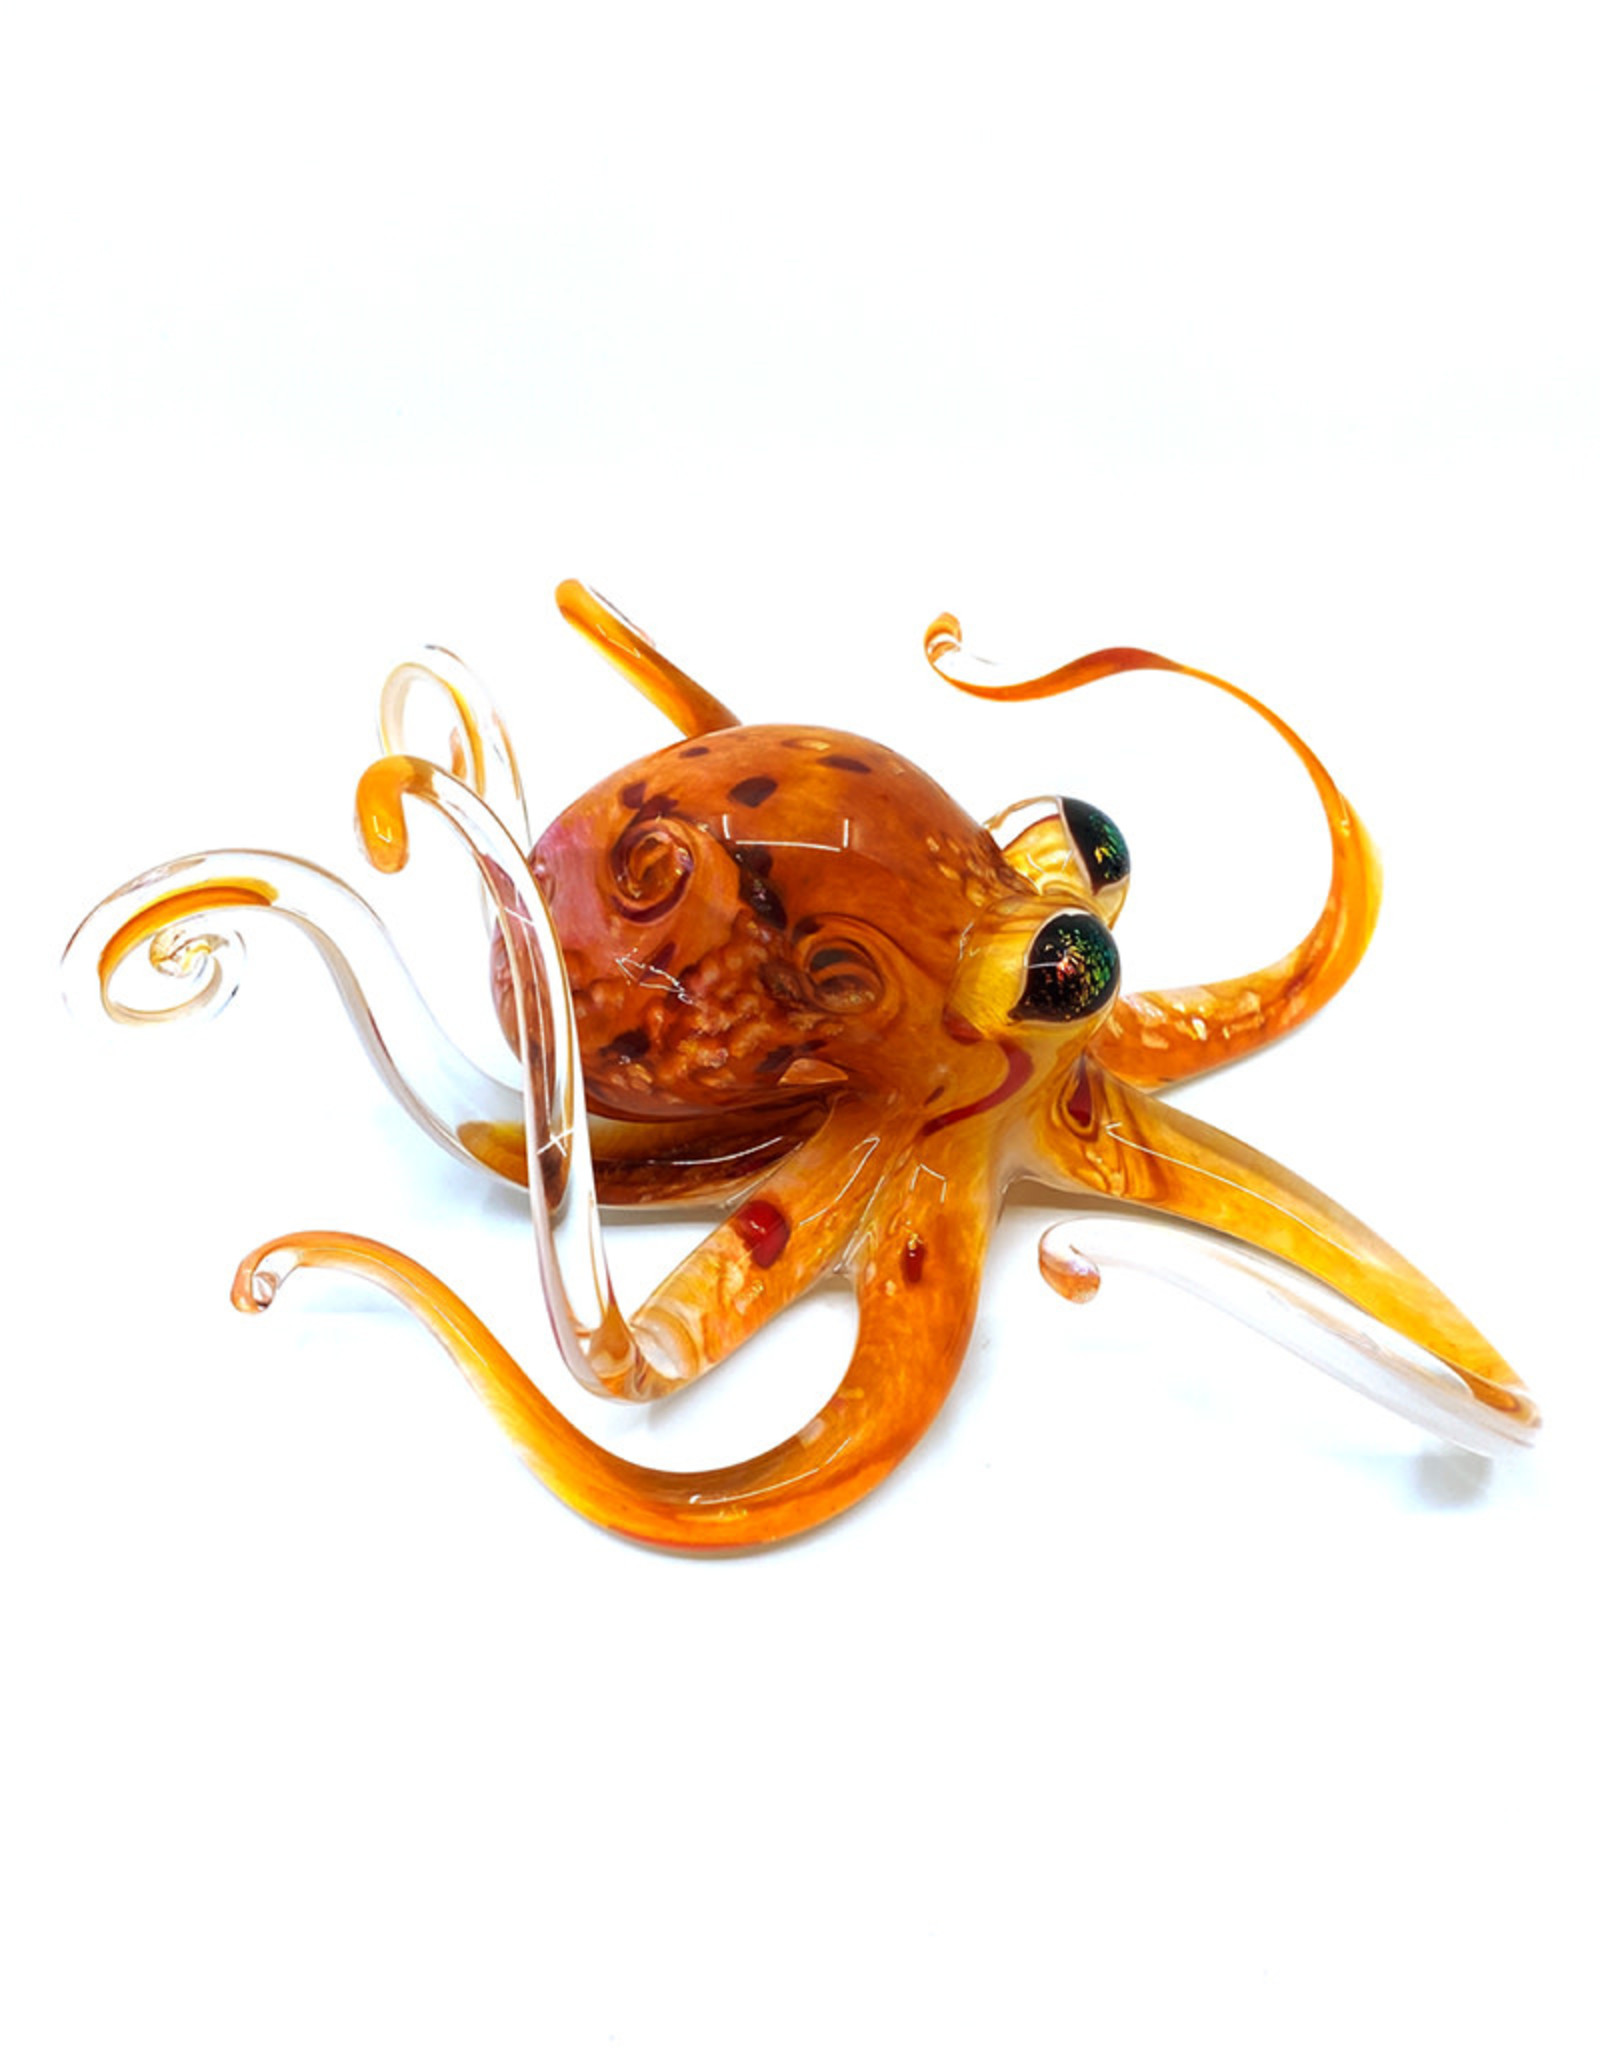 MICHAEL HOPKO SMALL FIRE OPAL OCTOPUS